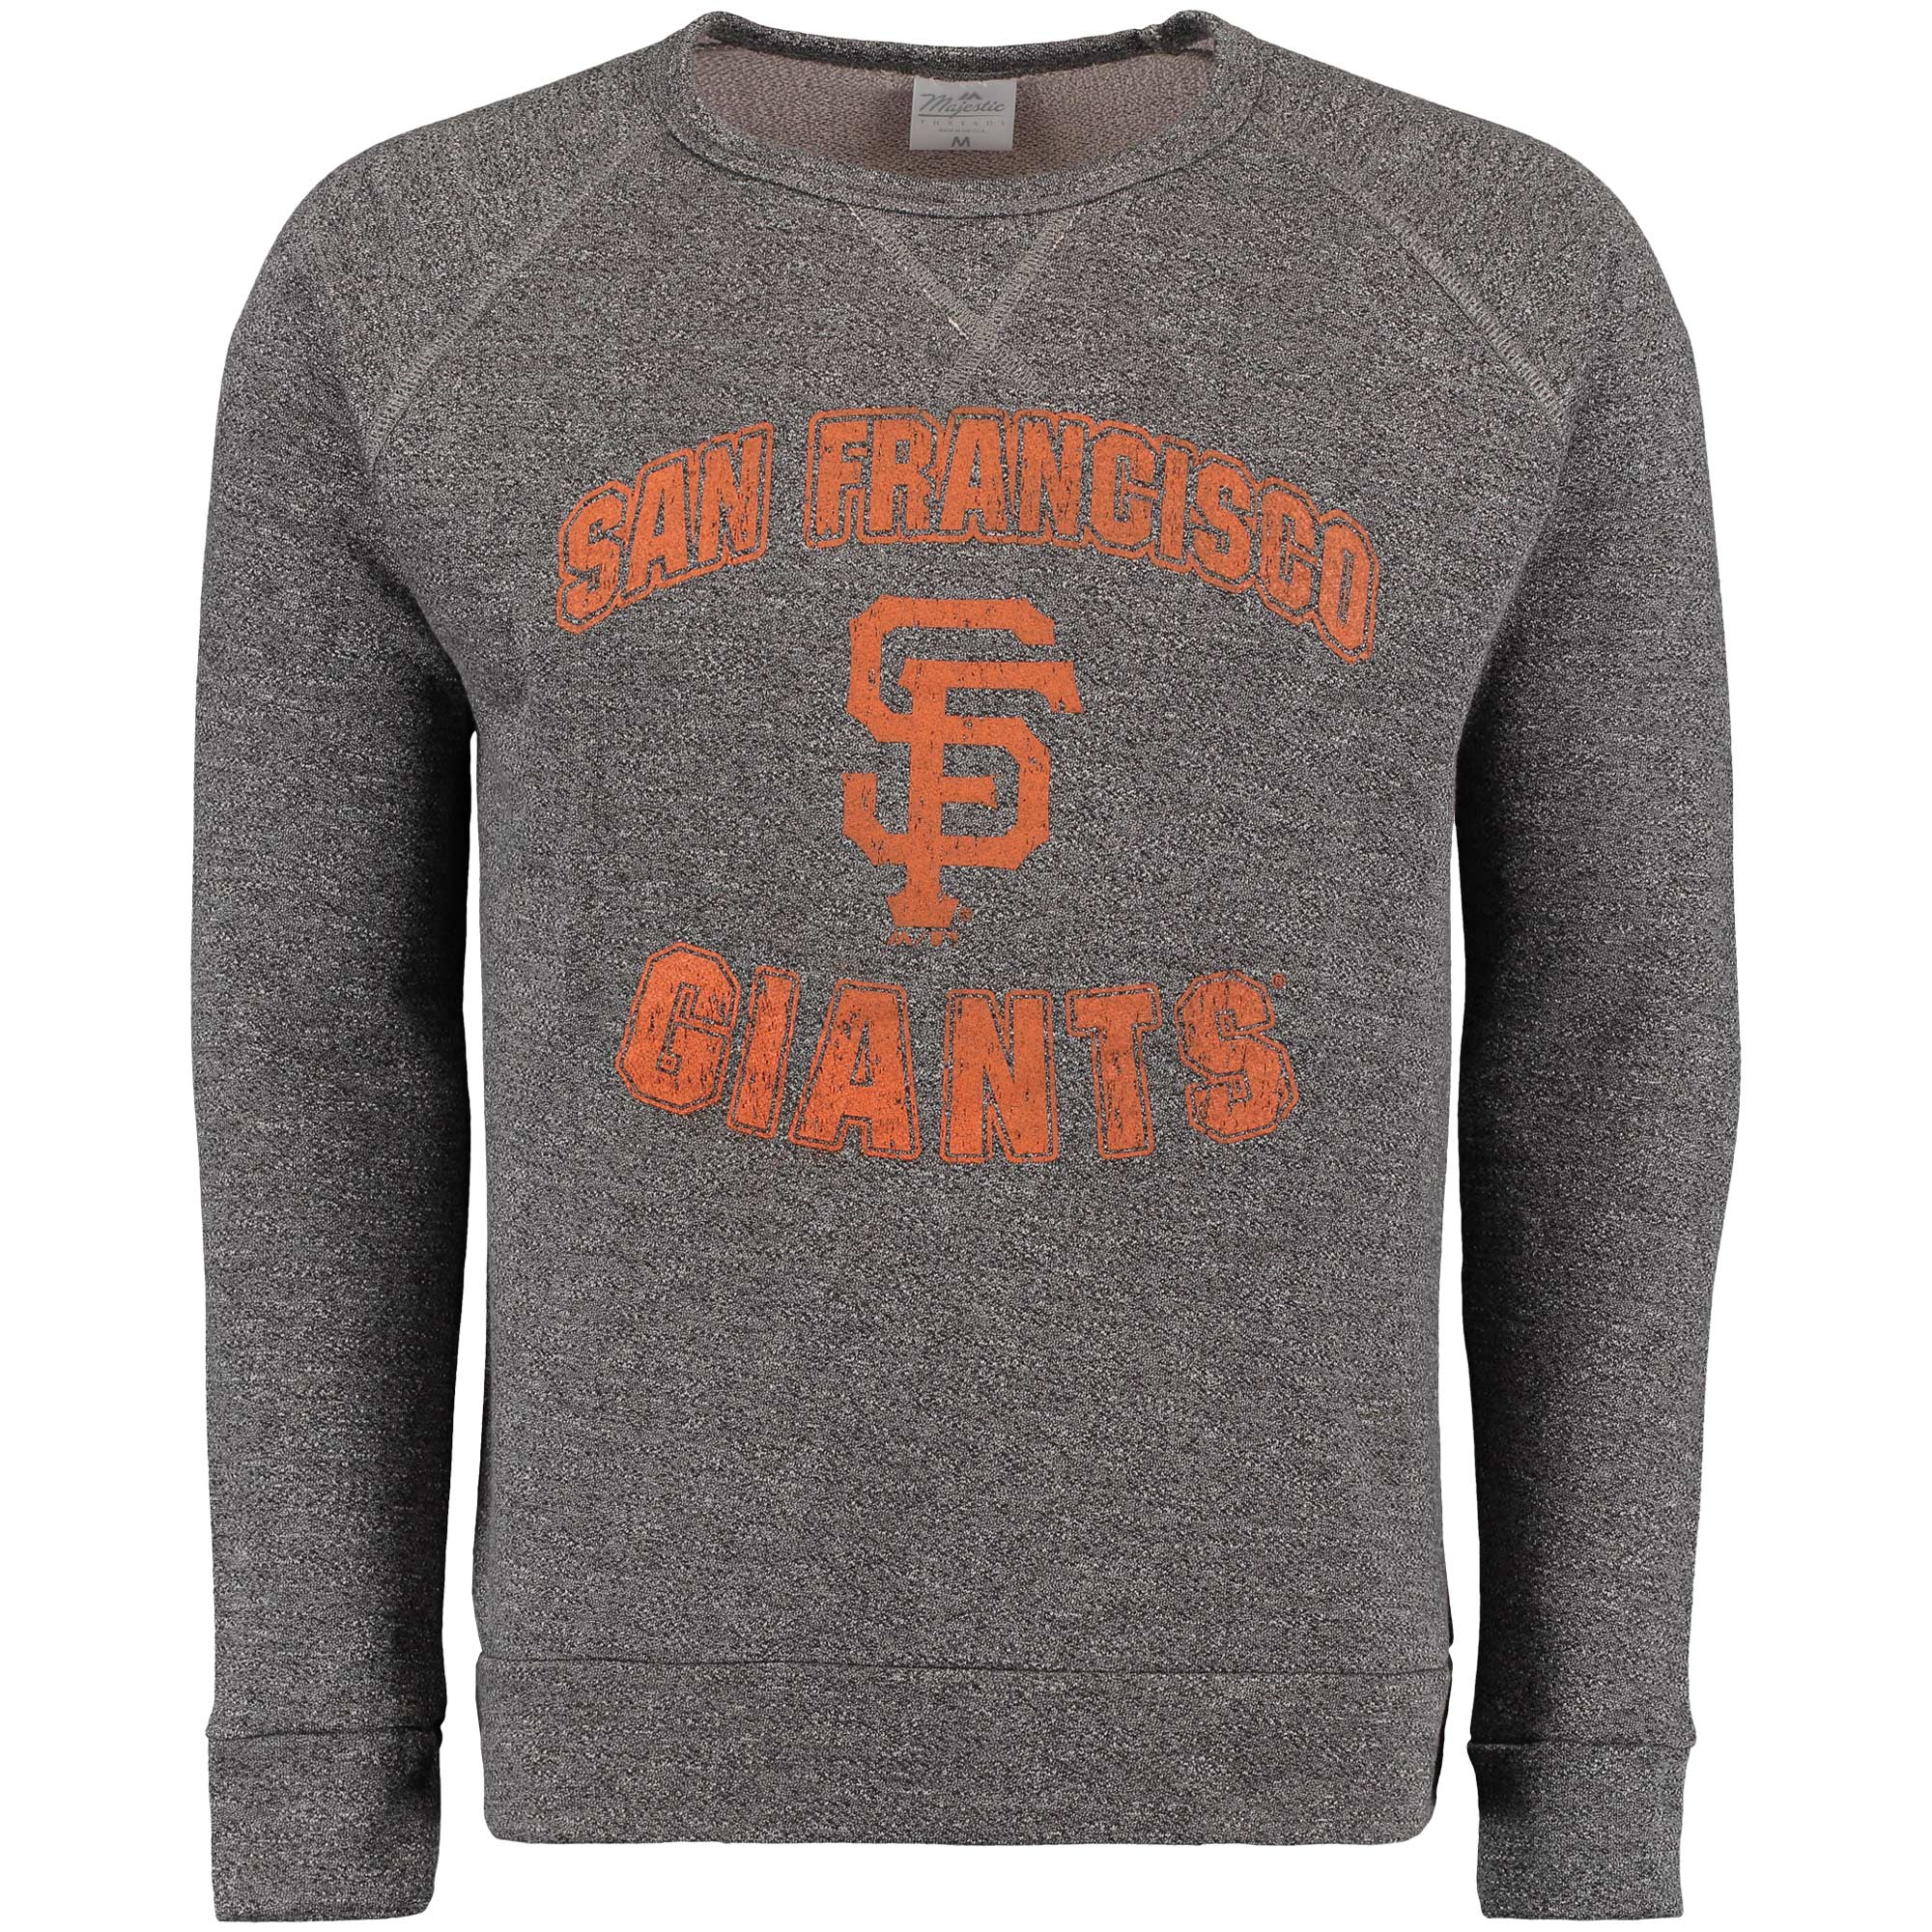 San Francisco Giants Majestic Threads Team Favorite French Terry Raglan Sleeve Sweatshirt - Black